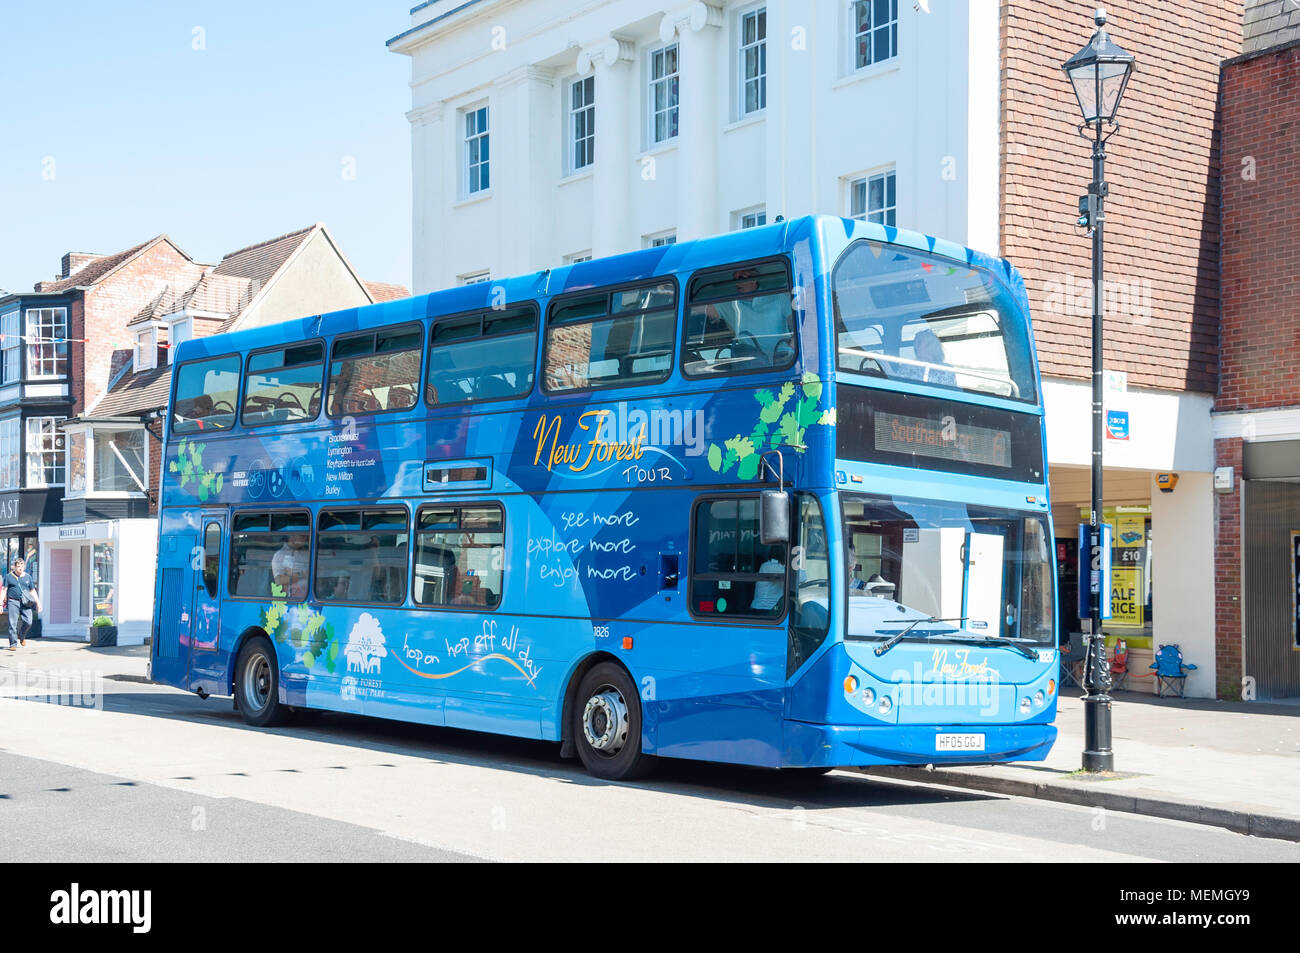 Double-decker New Forest Tour Bus, High Street, Lymington, Hampshire, England, United Kingdom - Stock Image